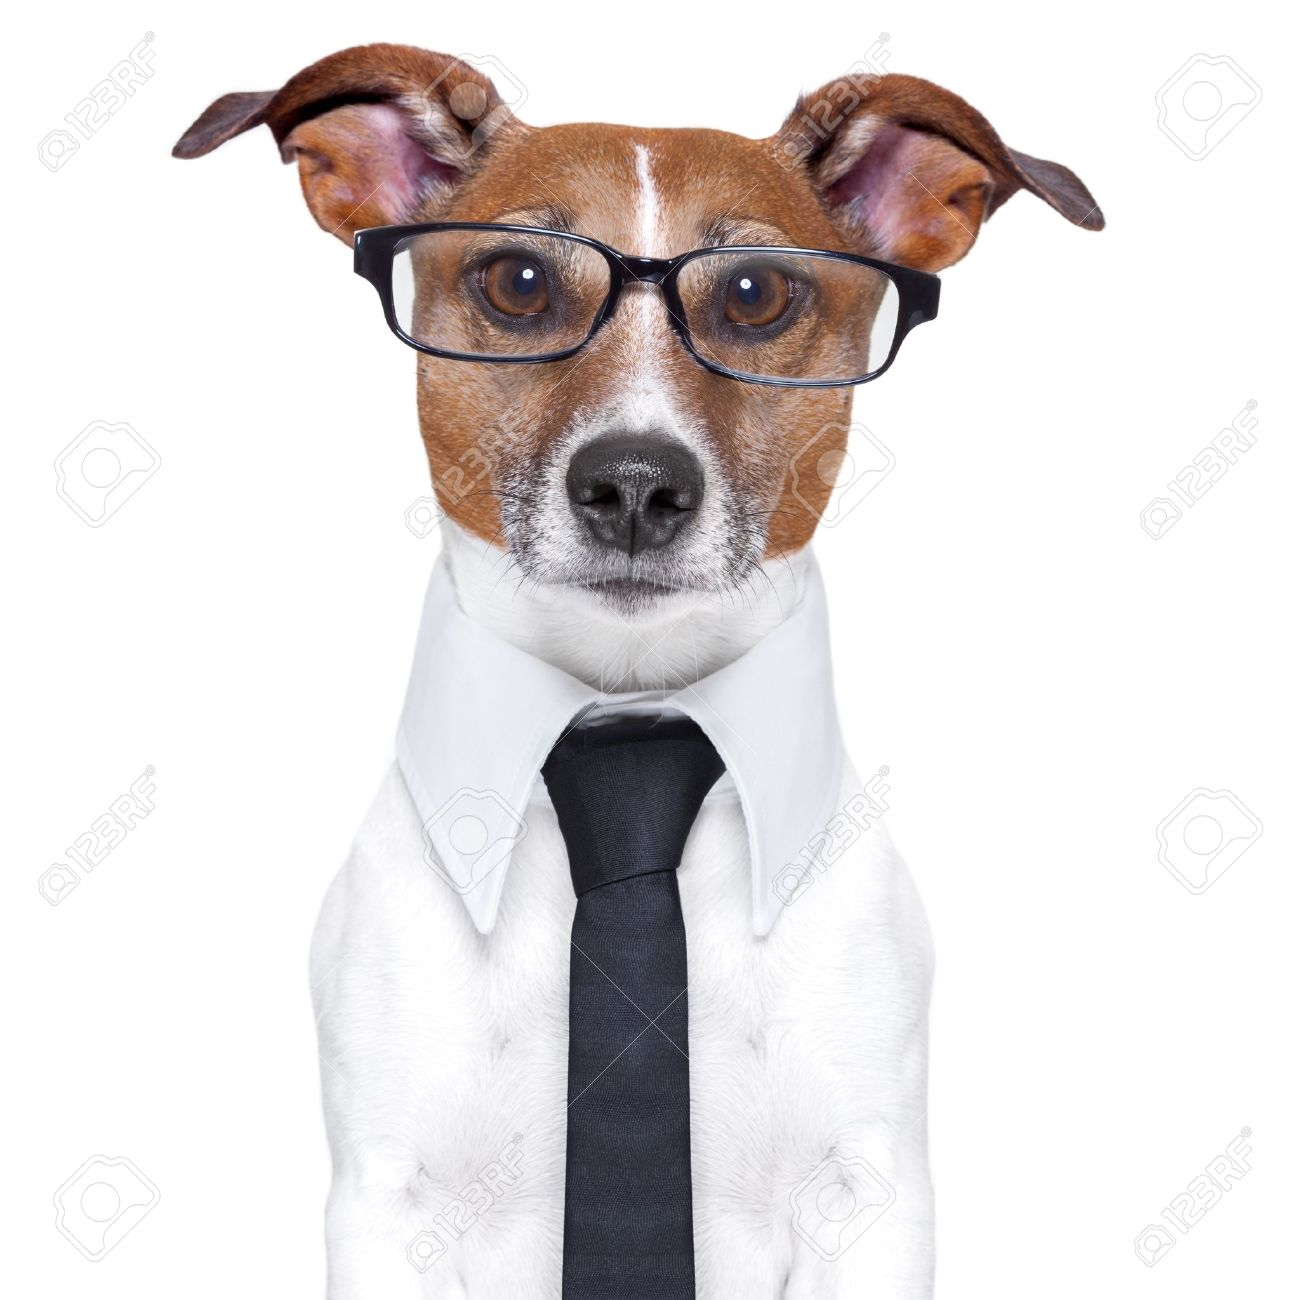 business dog with a tie and glasses Stock Photo - 19405281